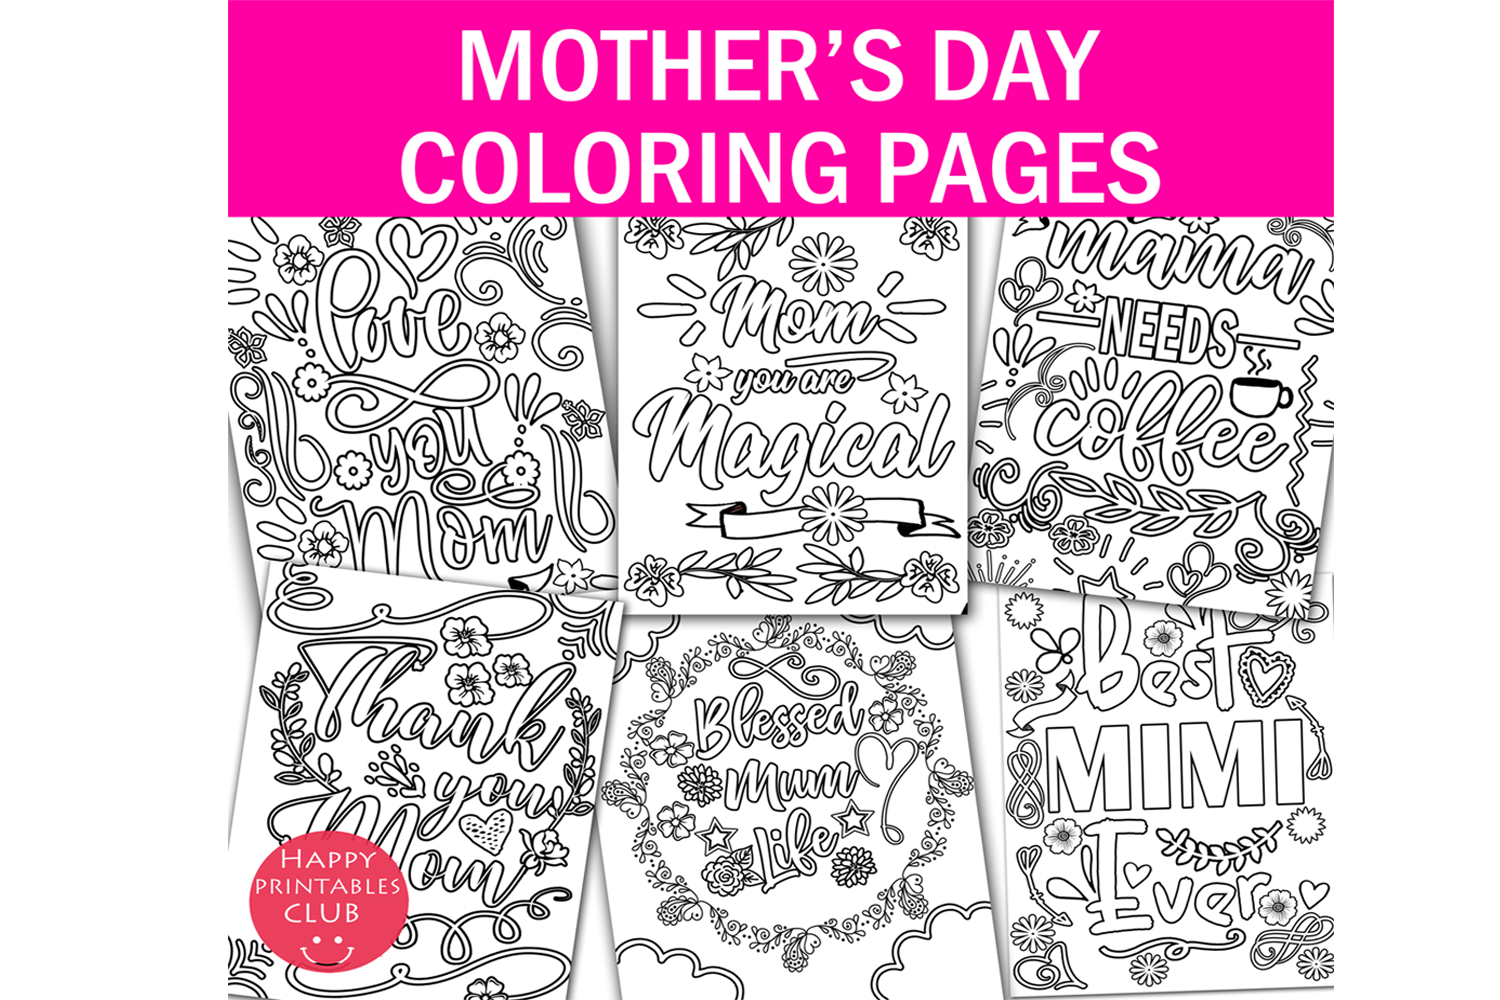 Download Free Mothers Day Coloring Graphic By Happy Printables Club Creative for Cricut Explore, Silhouette and other cutting machines.